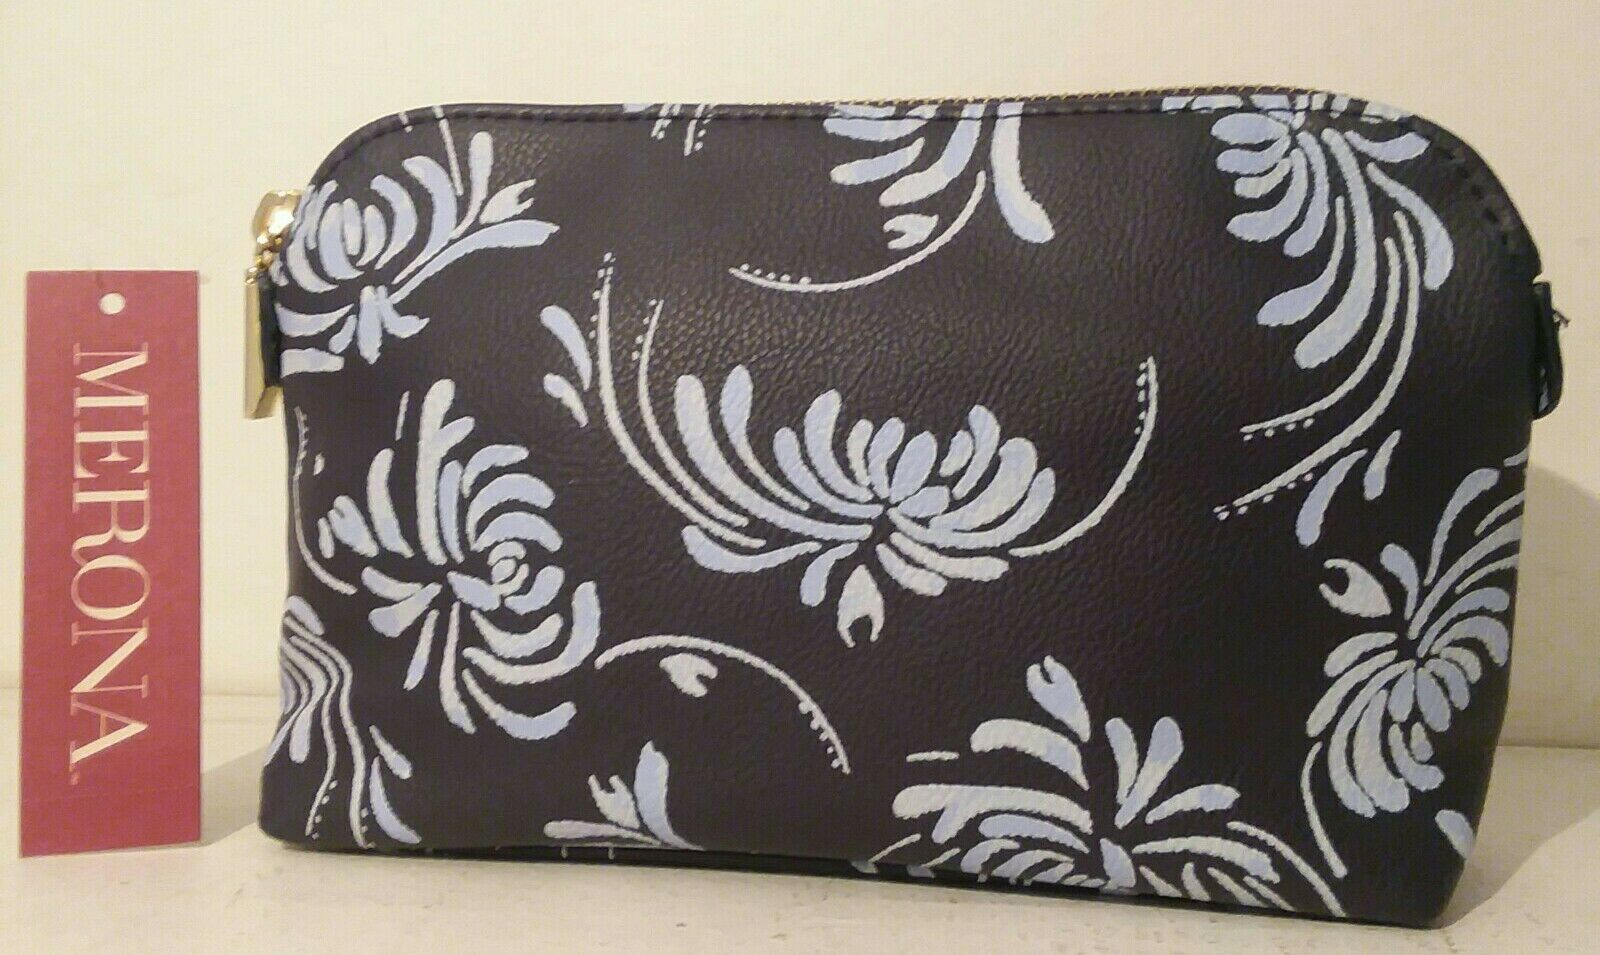 Merona Zip Make-up Navy Blue Floral Brand New with Tags Free Shipping